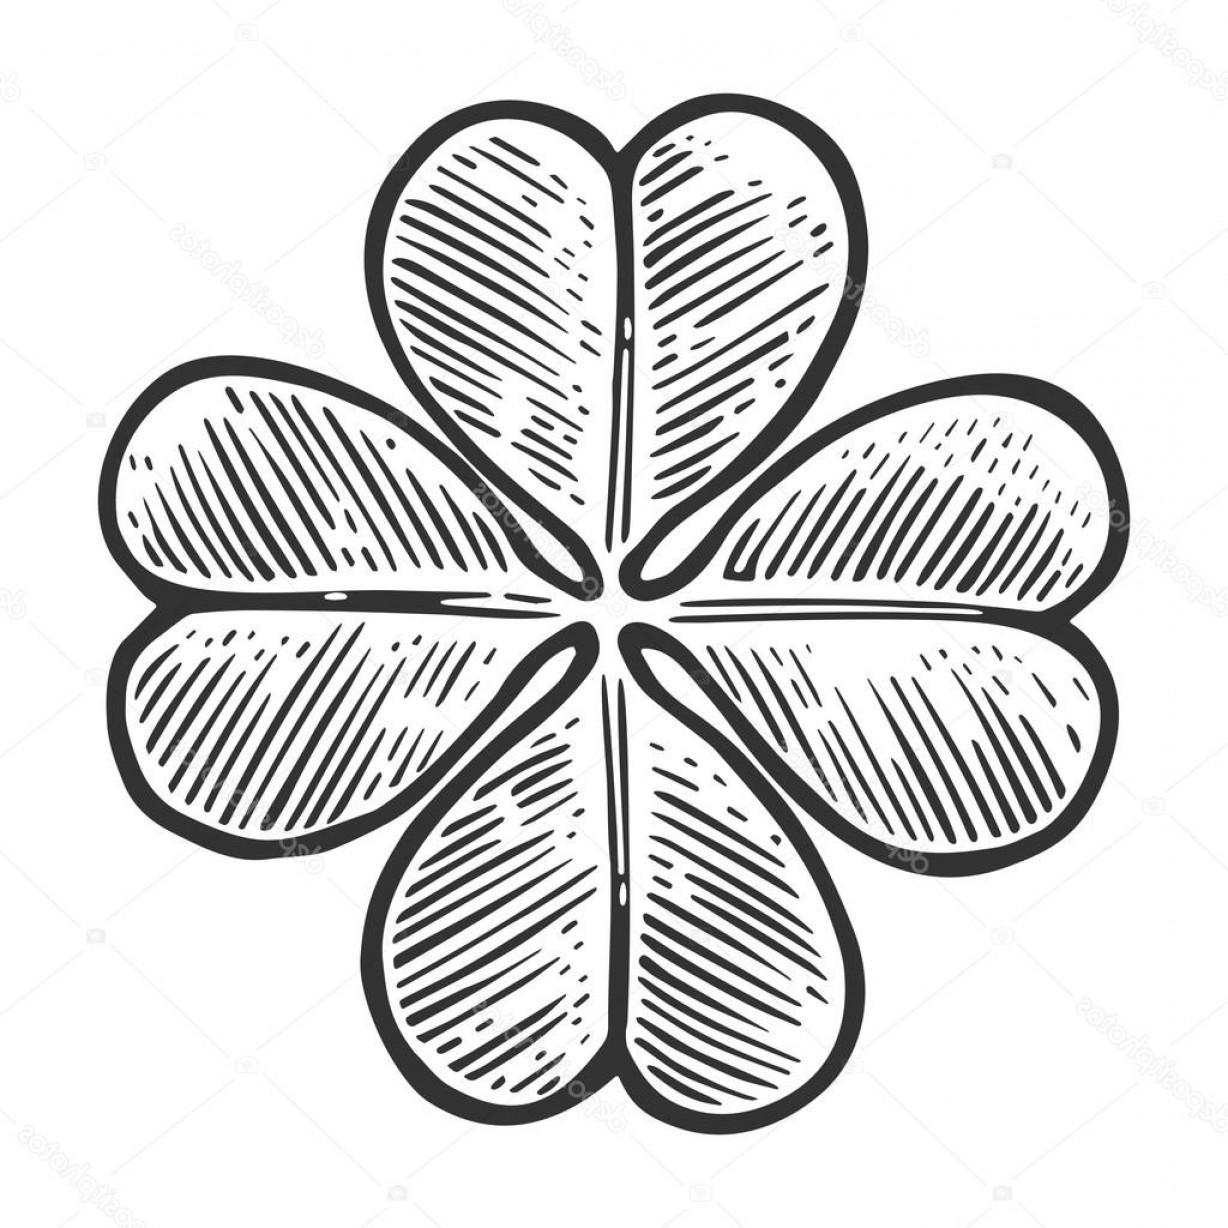 Four Leaf Clover Vector Art Black And White: Stock Illustration Good Luck Four Leaf Clover